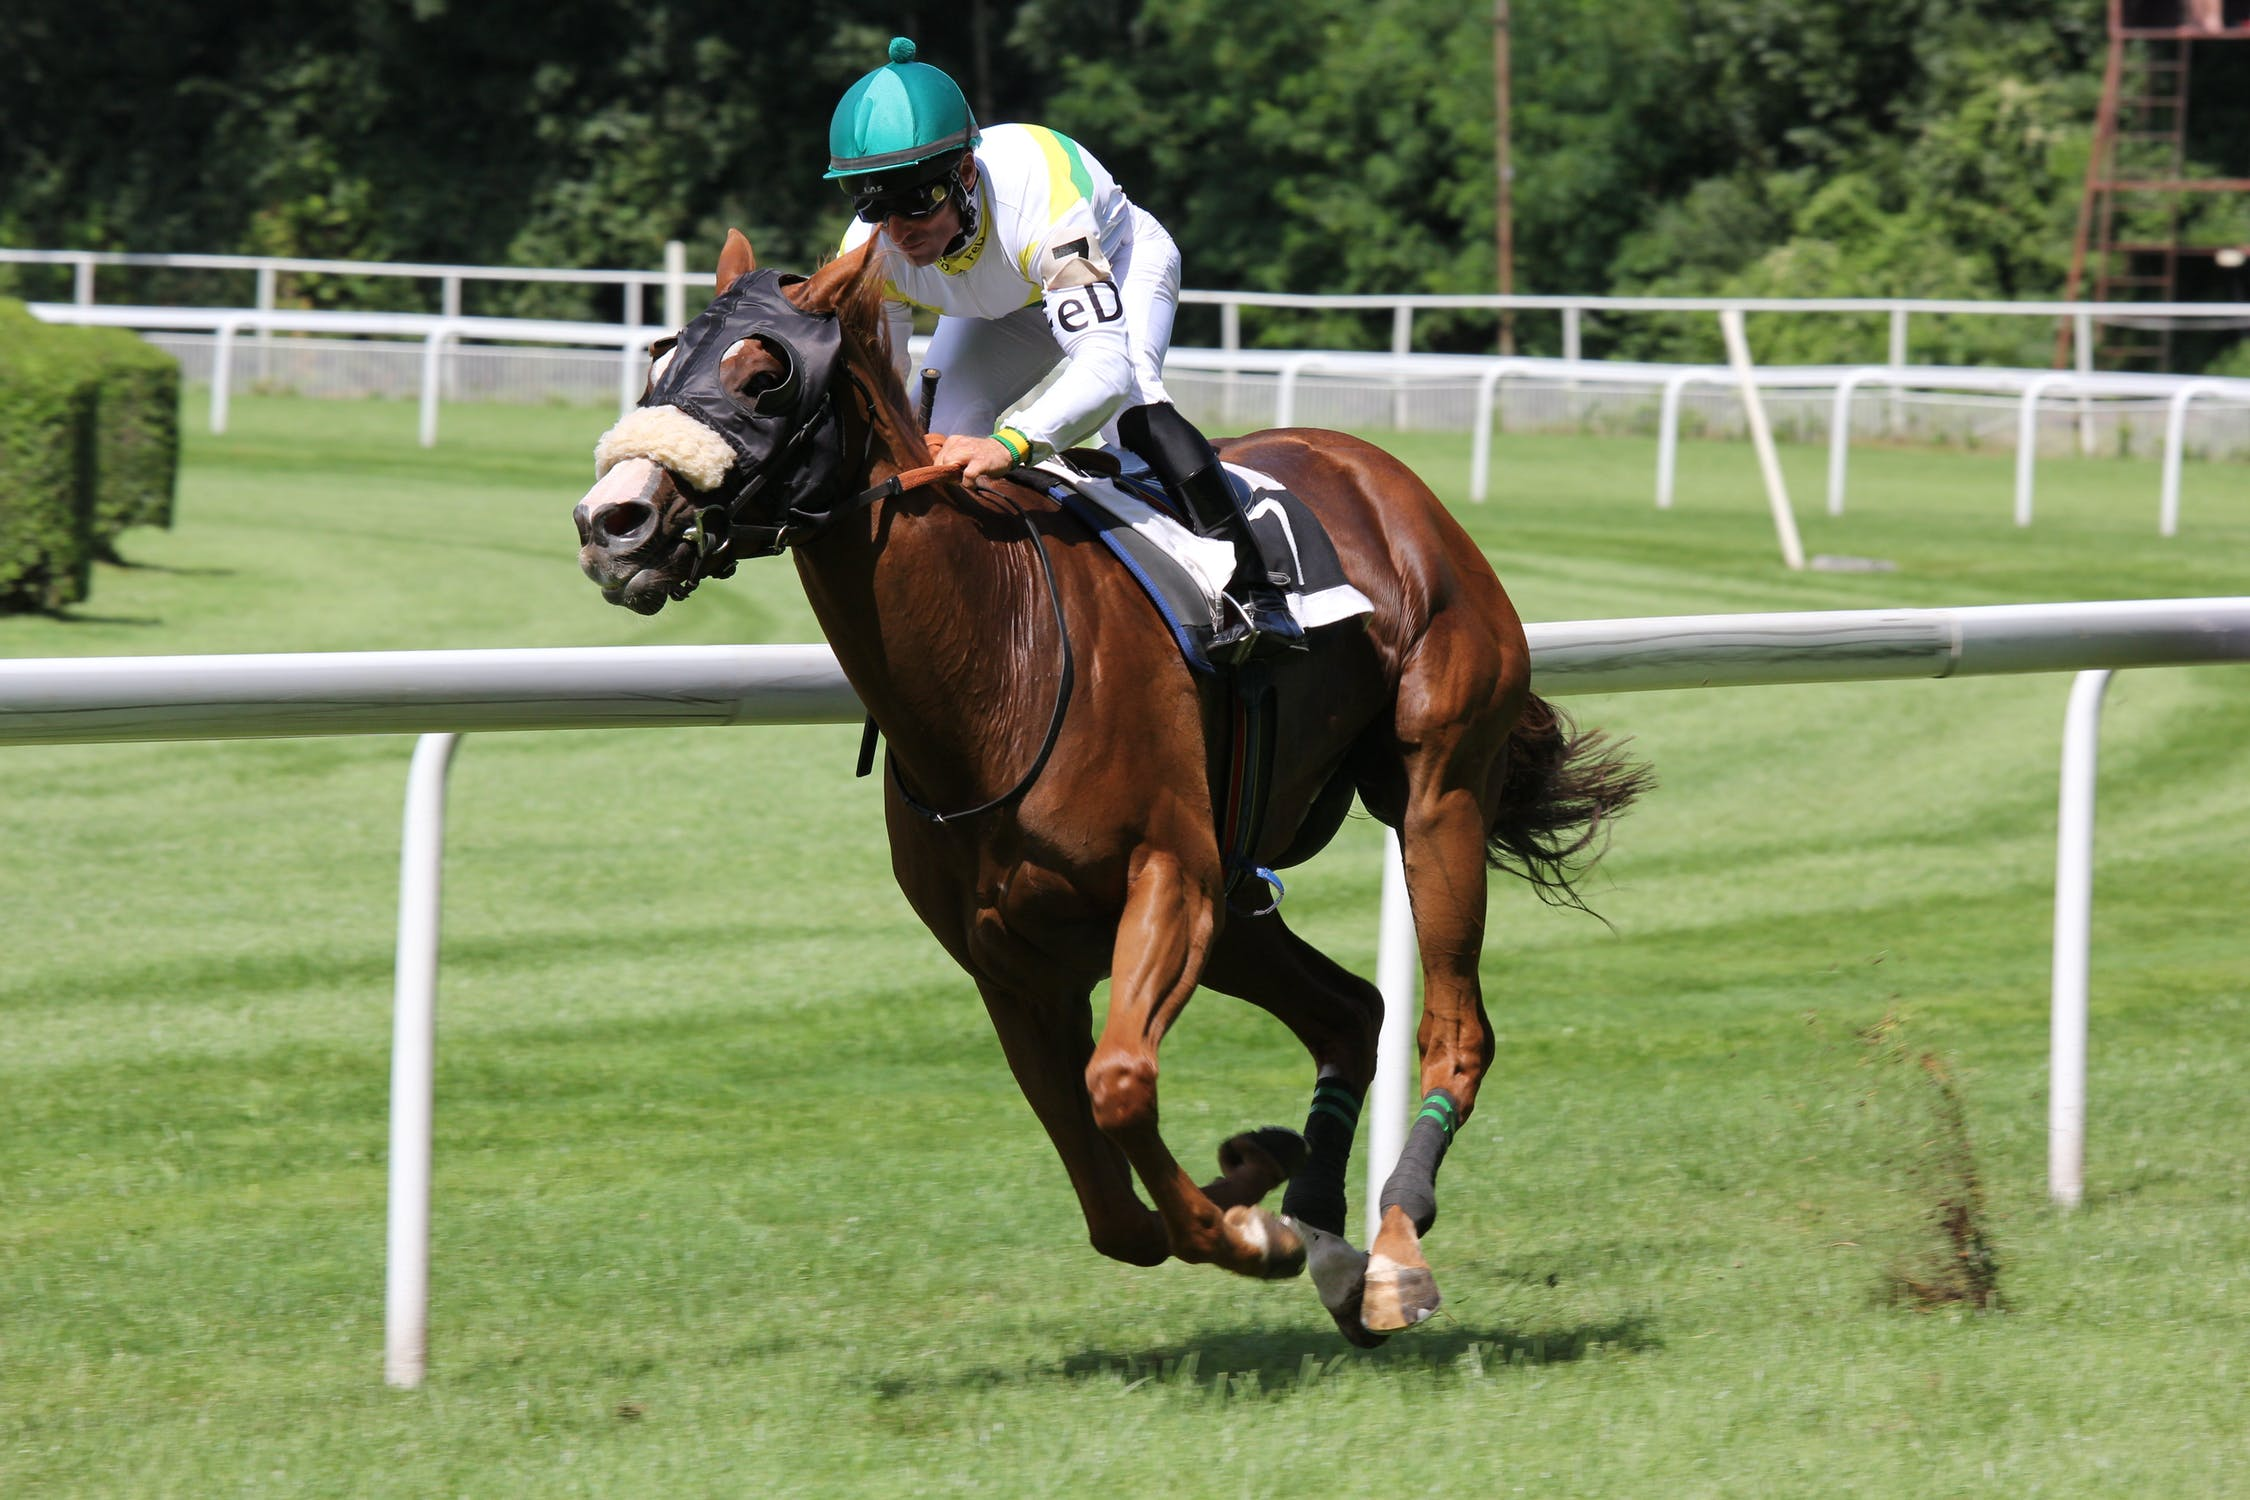 A jockey riding a racehorse